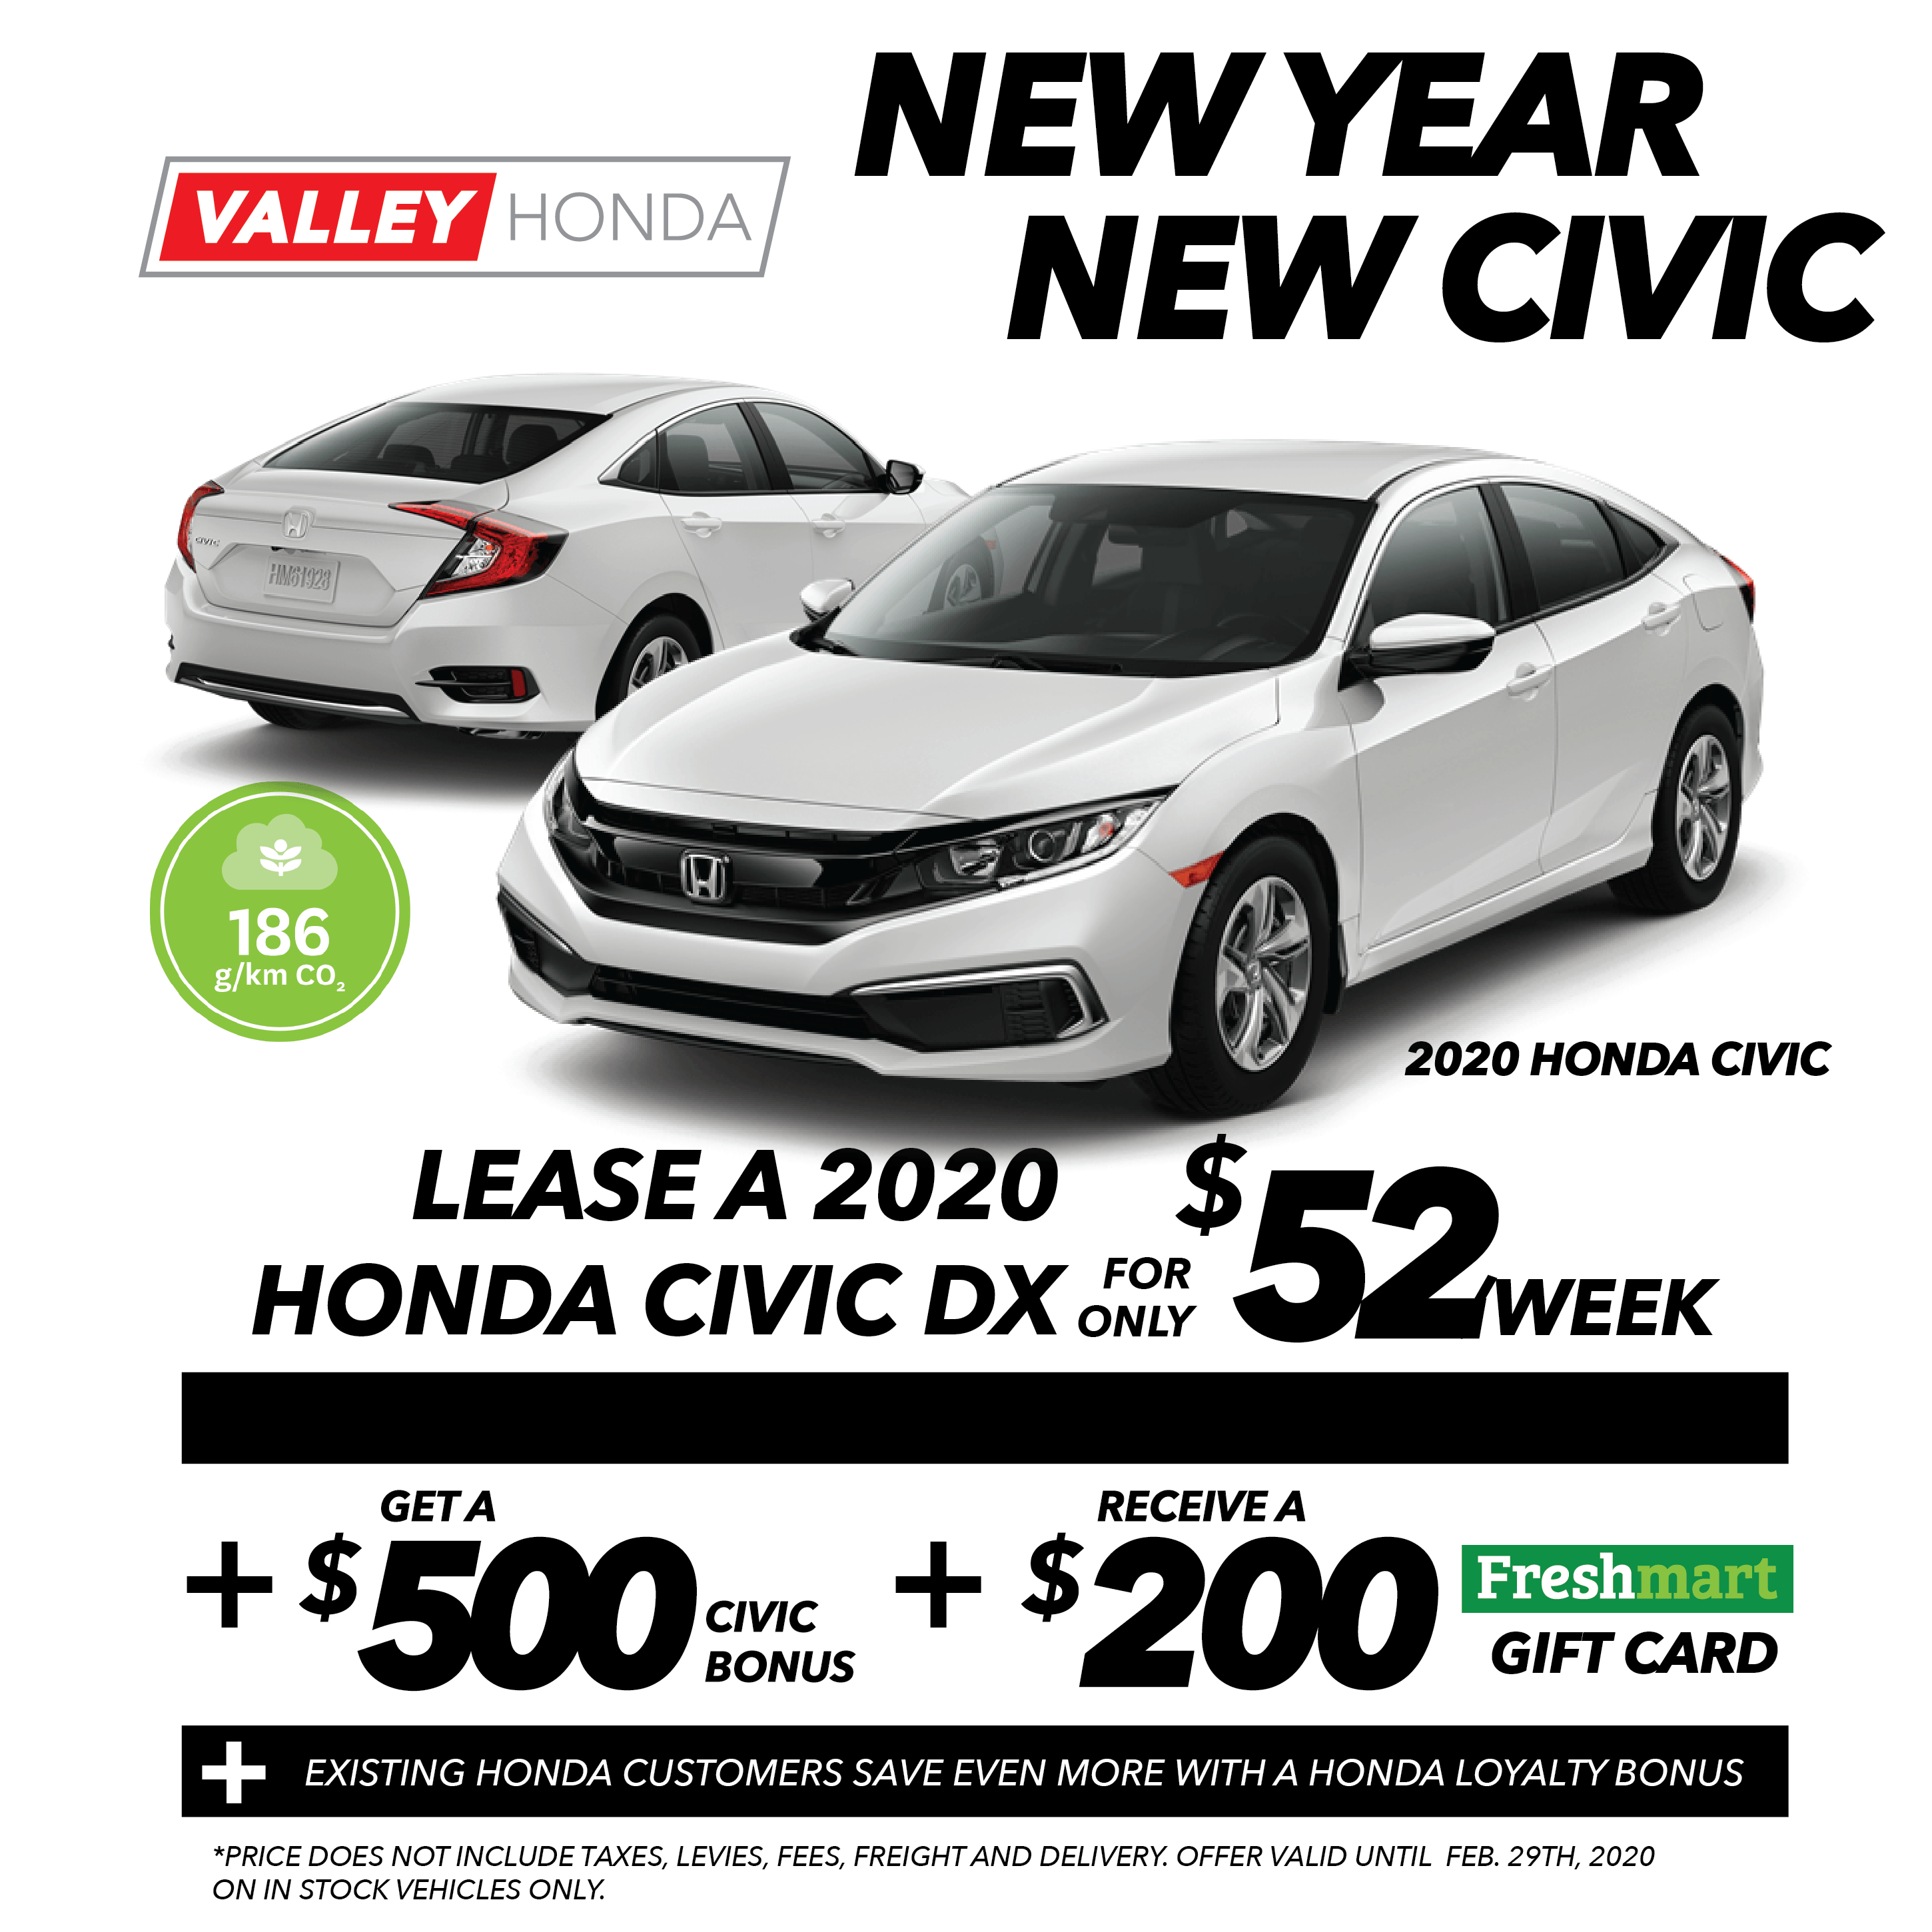 New Year, New Civic